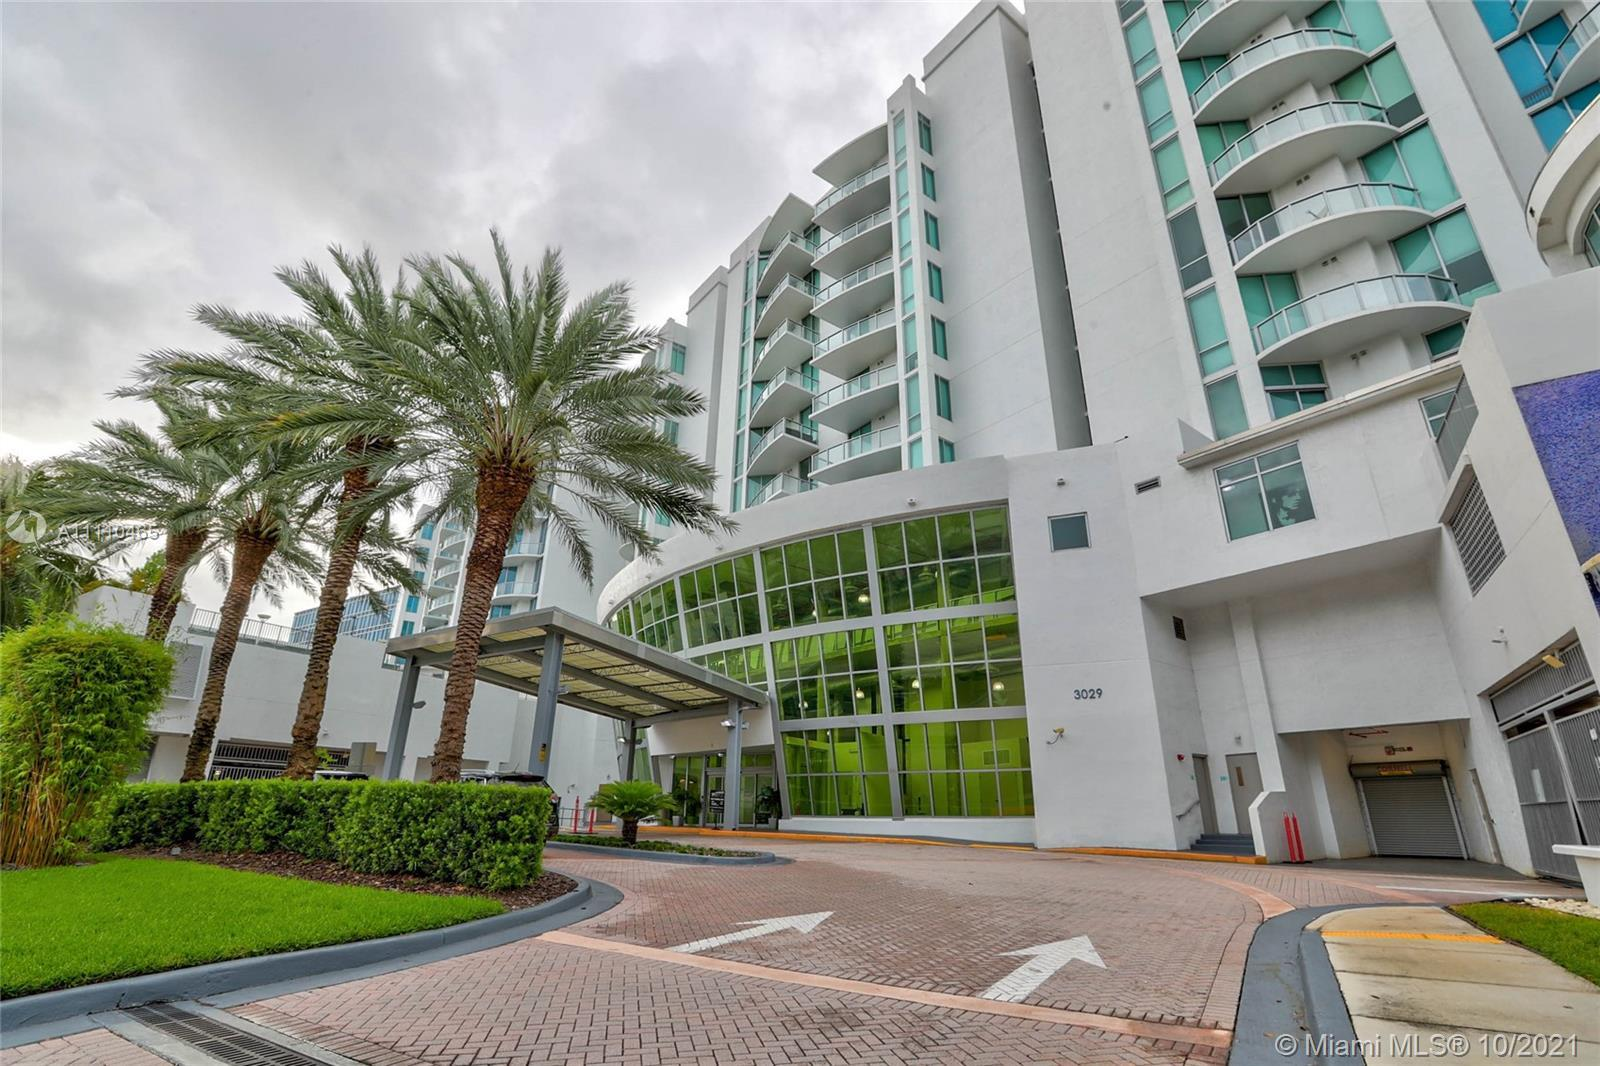 New York Style Condo with 12 foot ceilings, Tremendous views of Marina, Intracoastal Canal,  Pool, &